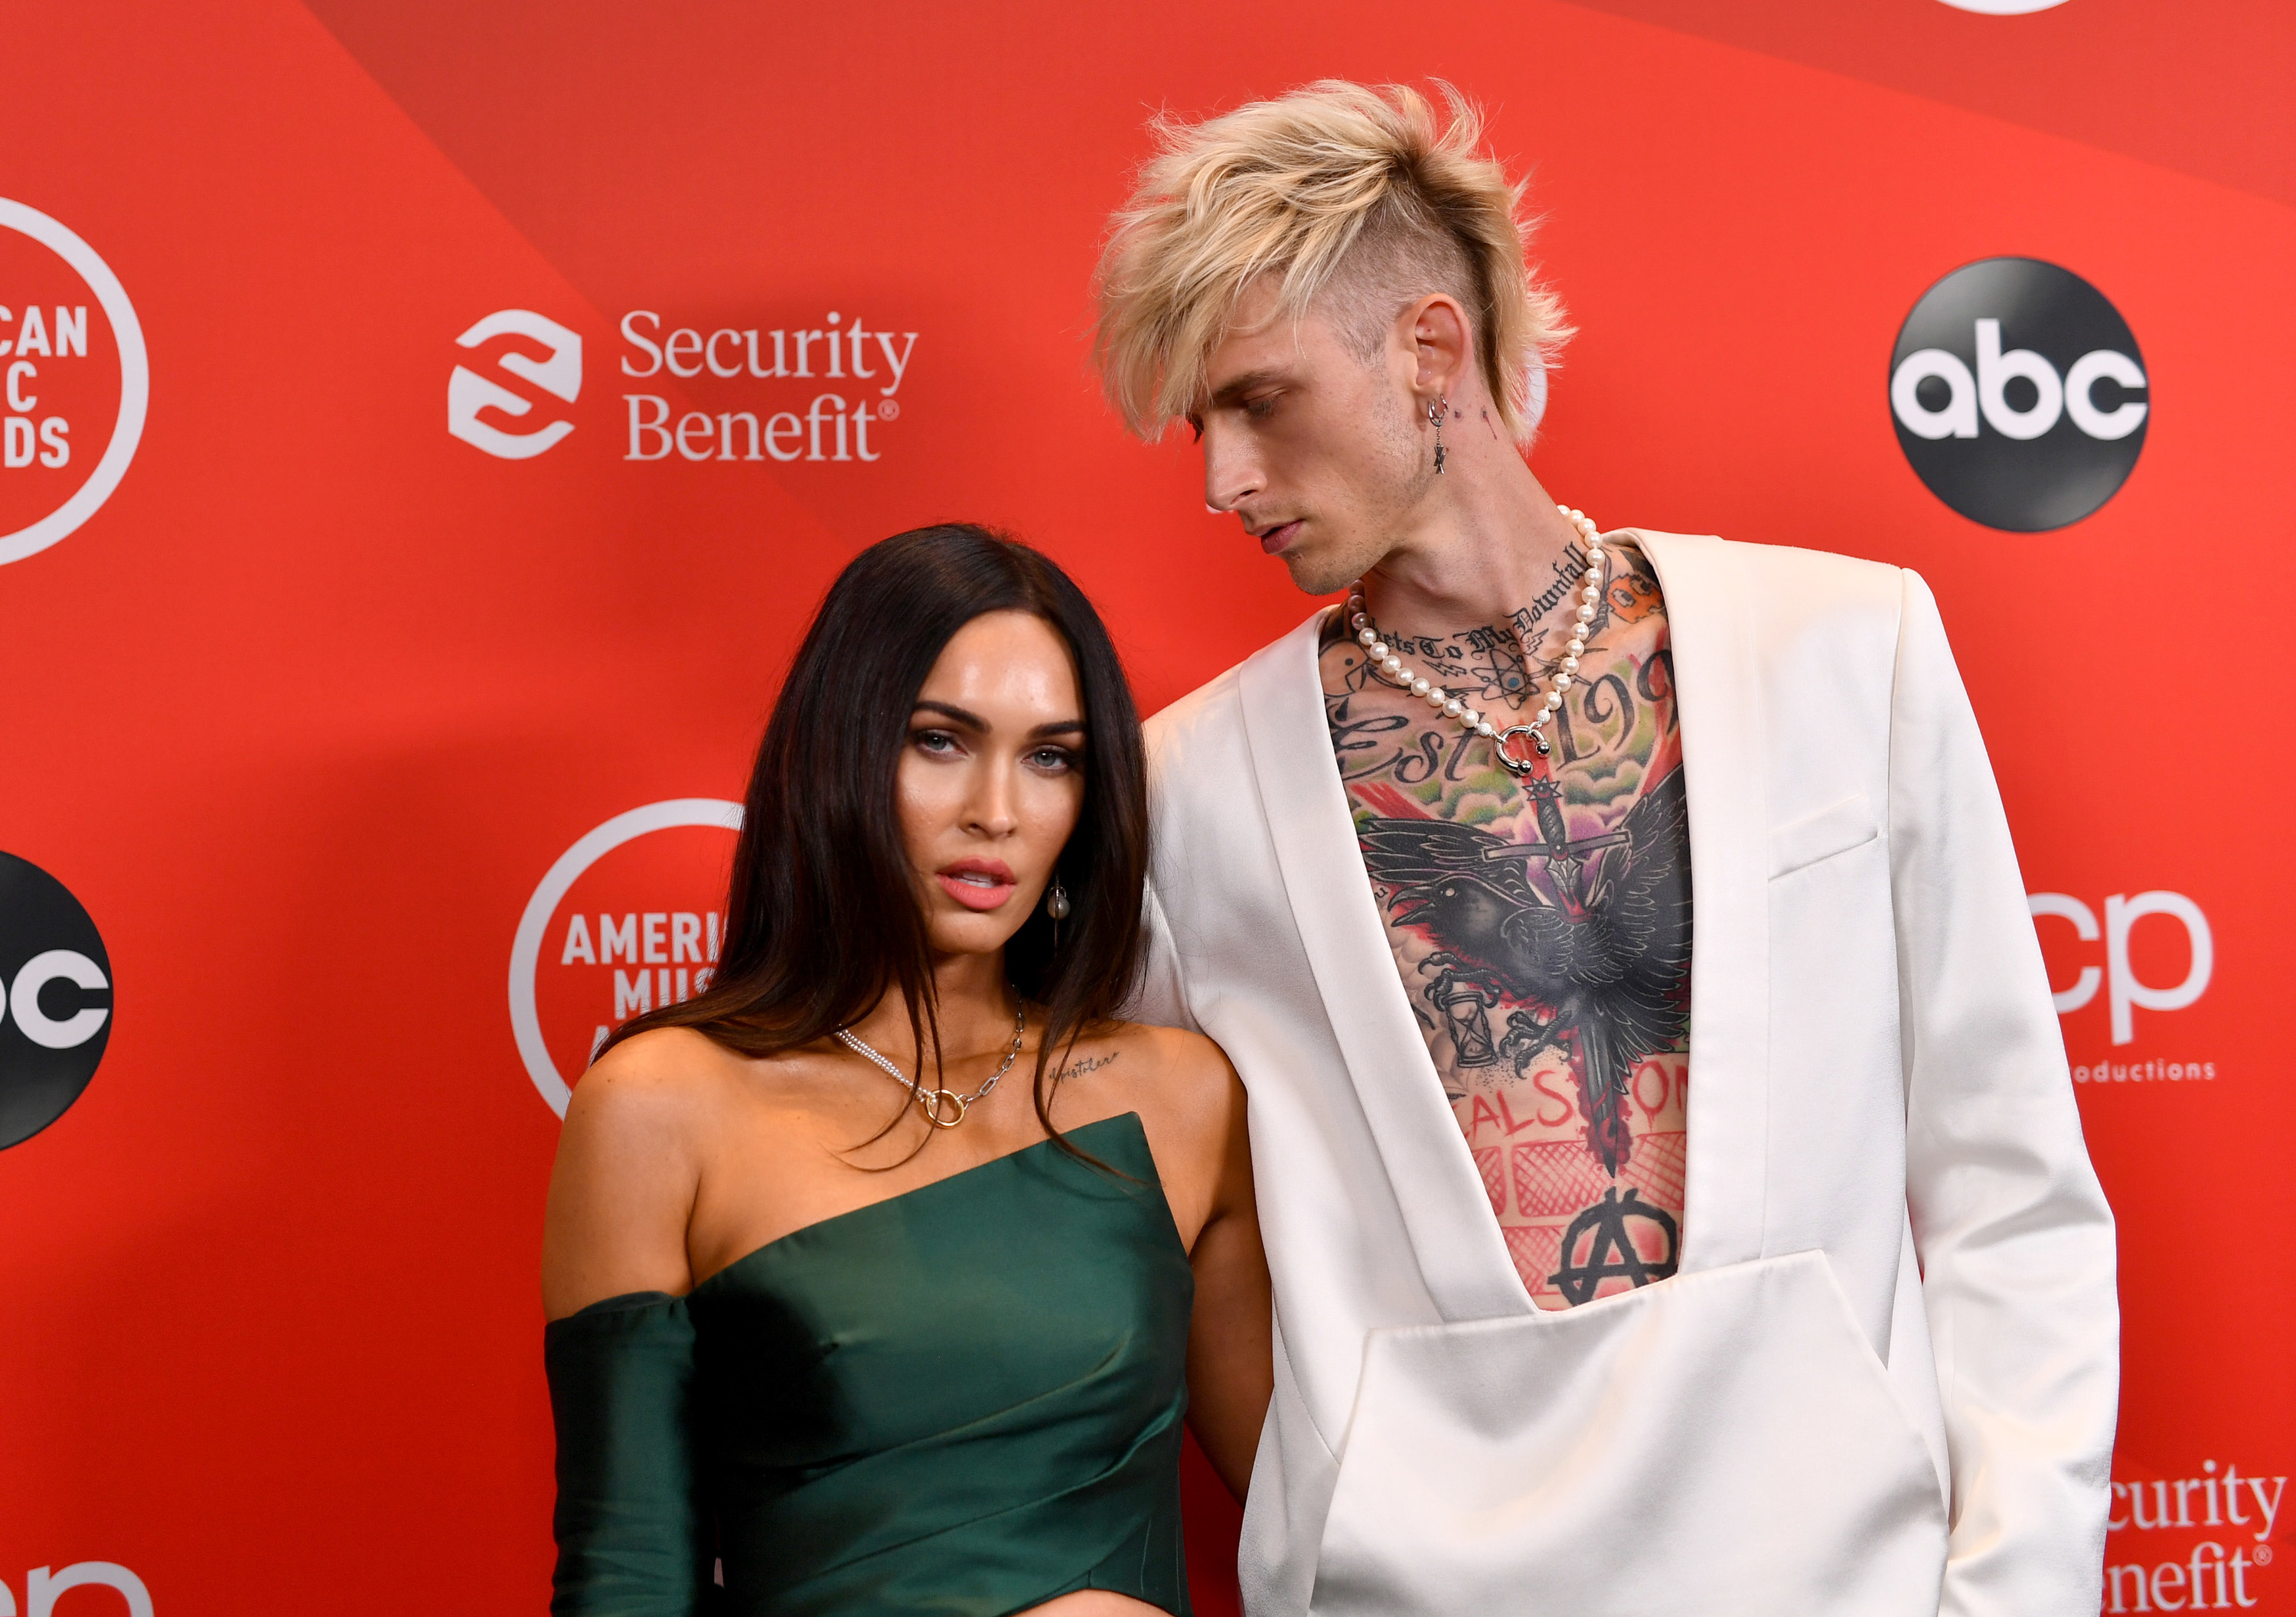 Megan Fox and Machine Gun Kelly attend the 2020 American Music Awards at Microsoft Theater on November 22, 2020 in Los Angeles, California